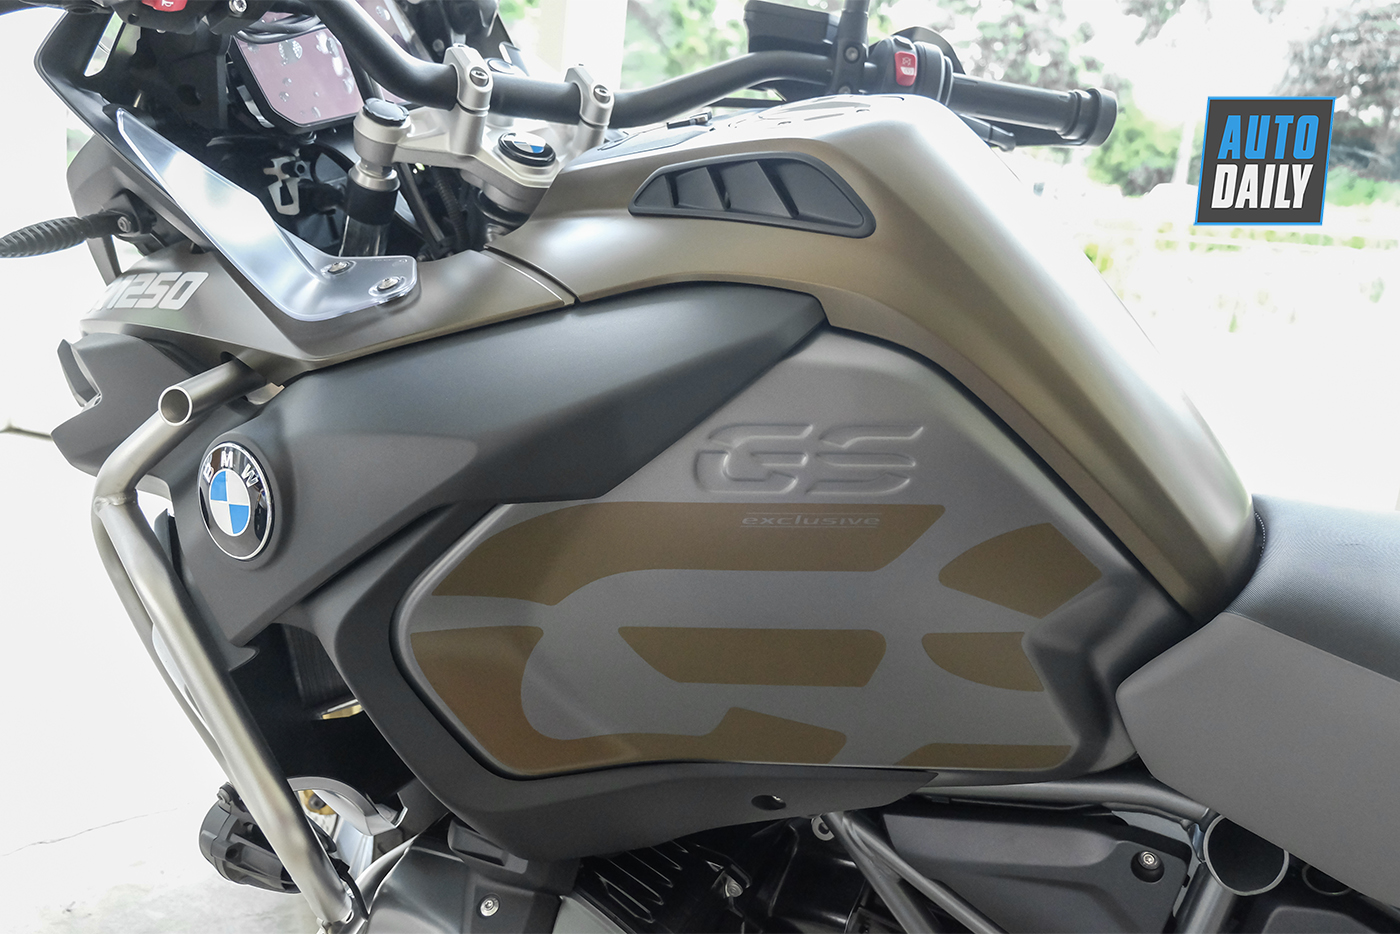 bmw-r1250-gsa-exclusive-2019-21.jpg